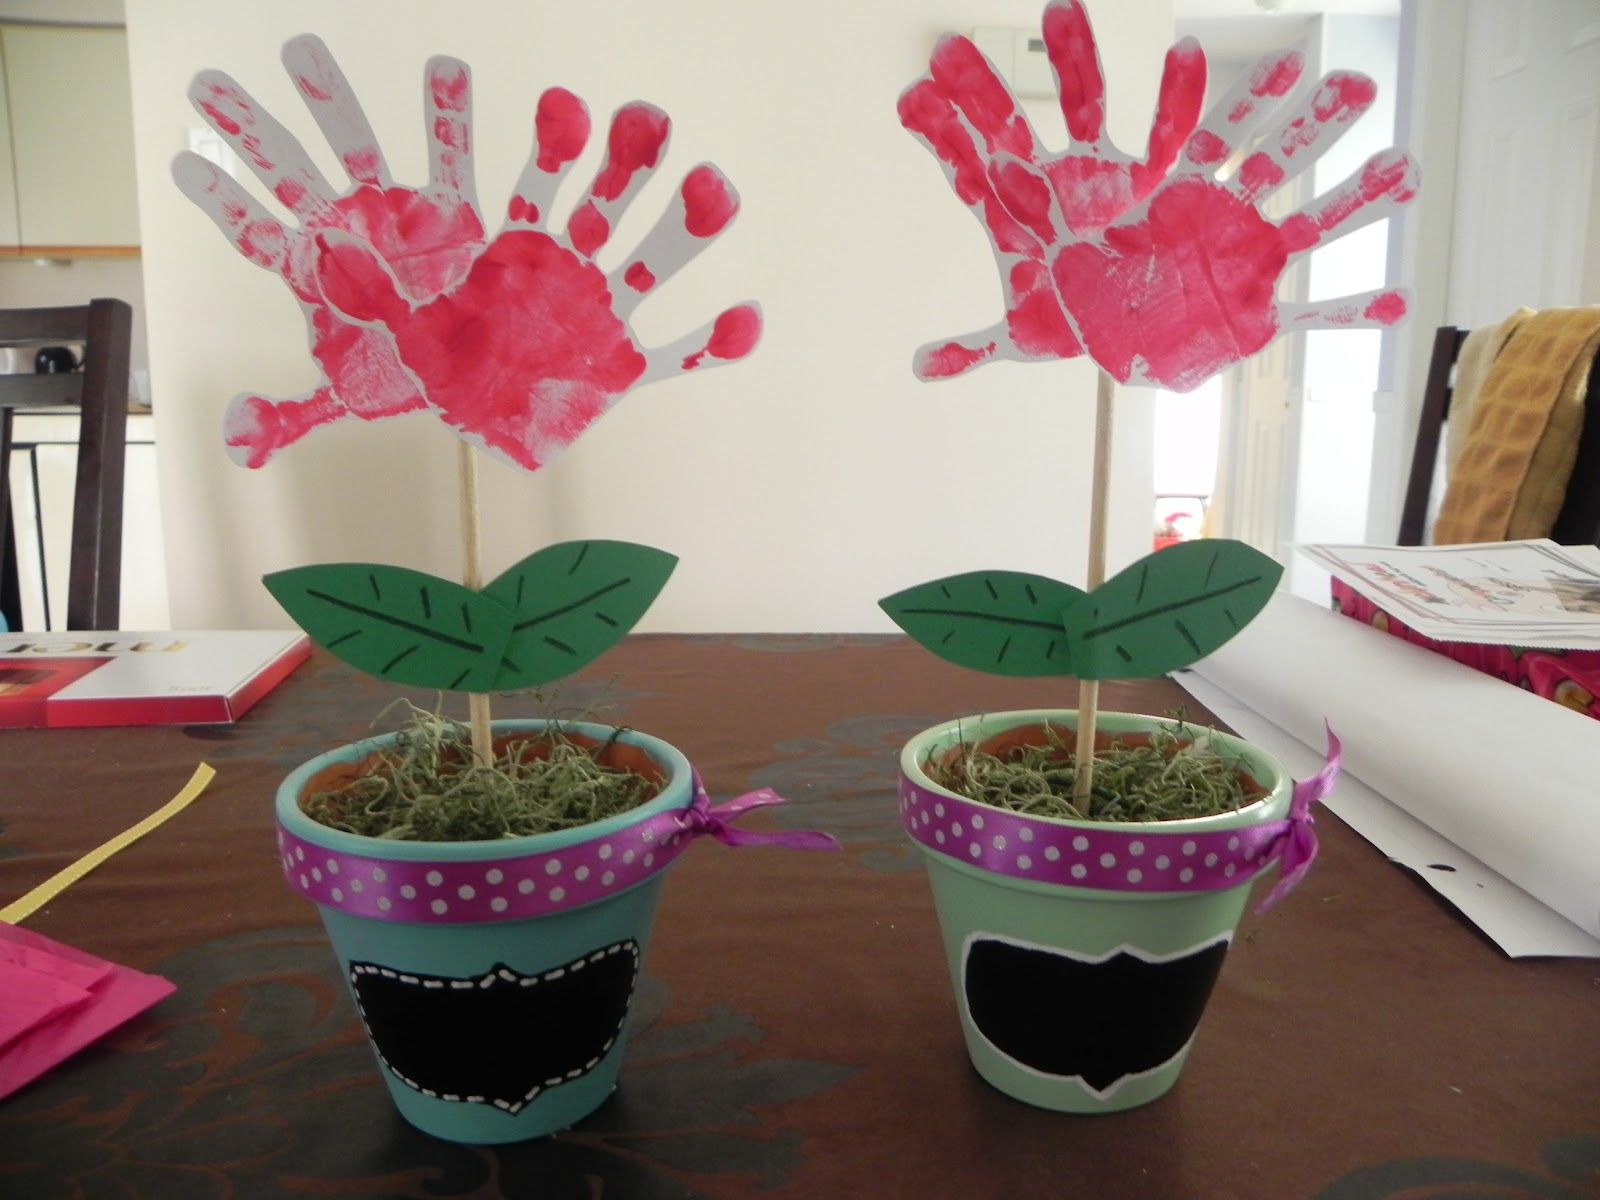 Grandparents Day Craft Ideas For Kids Part - 43: Baby Gift Charming Grandparent Gift Ideas From Toddlers Diy .